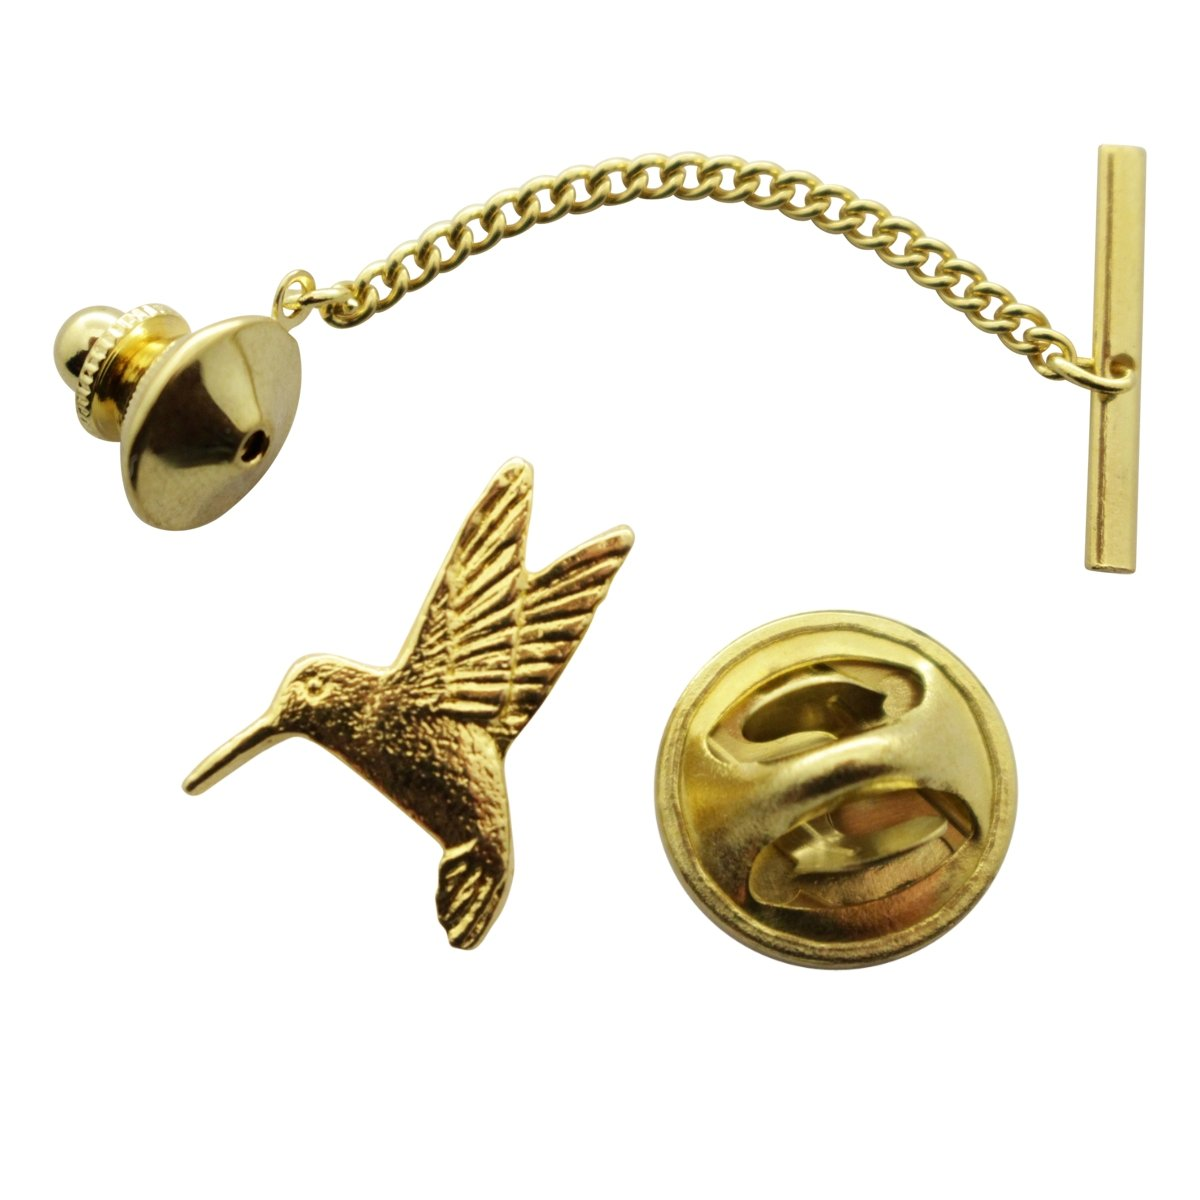 Hummingbird Tie Tack ~ 24K Gold ~ Tie Tack or Pin ~ Sarah's Treats & Treasures by Sarah's Treats & Treasures